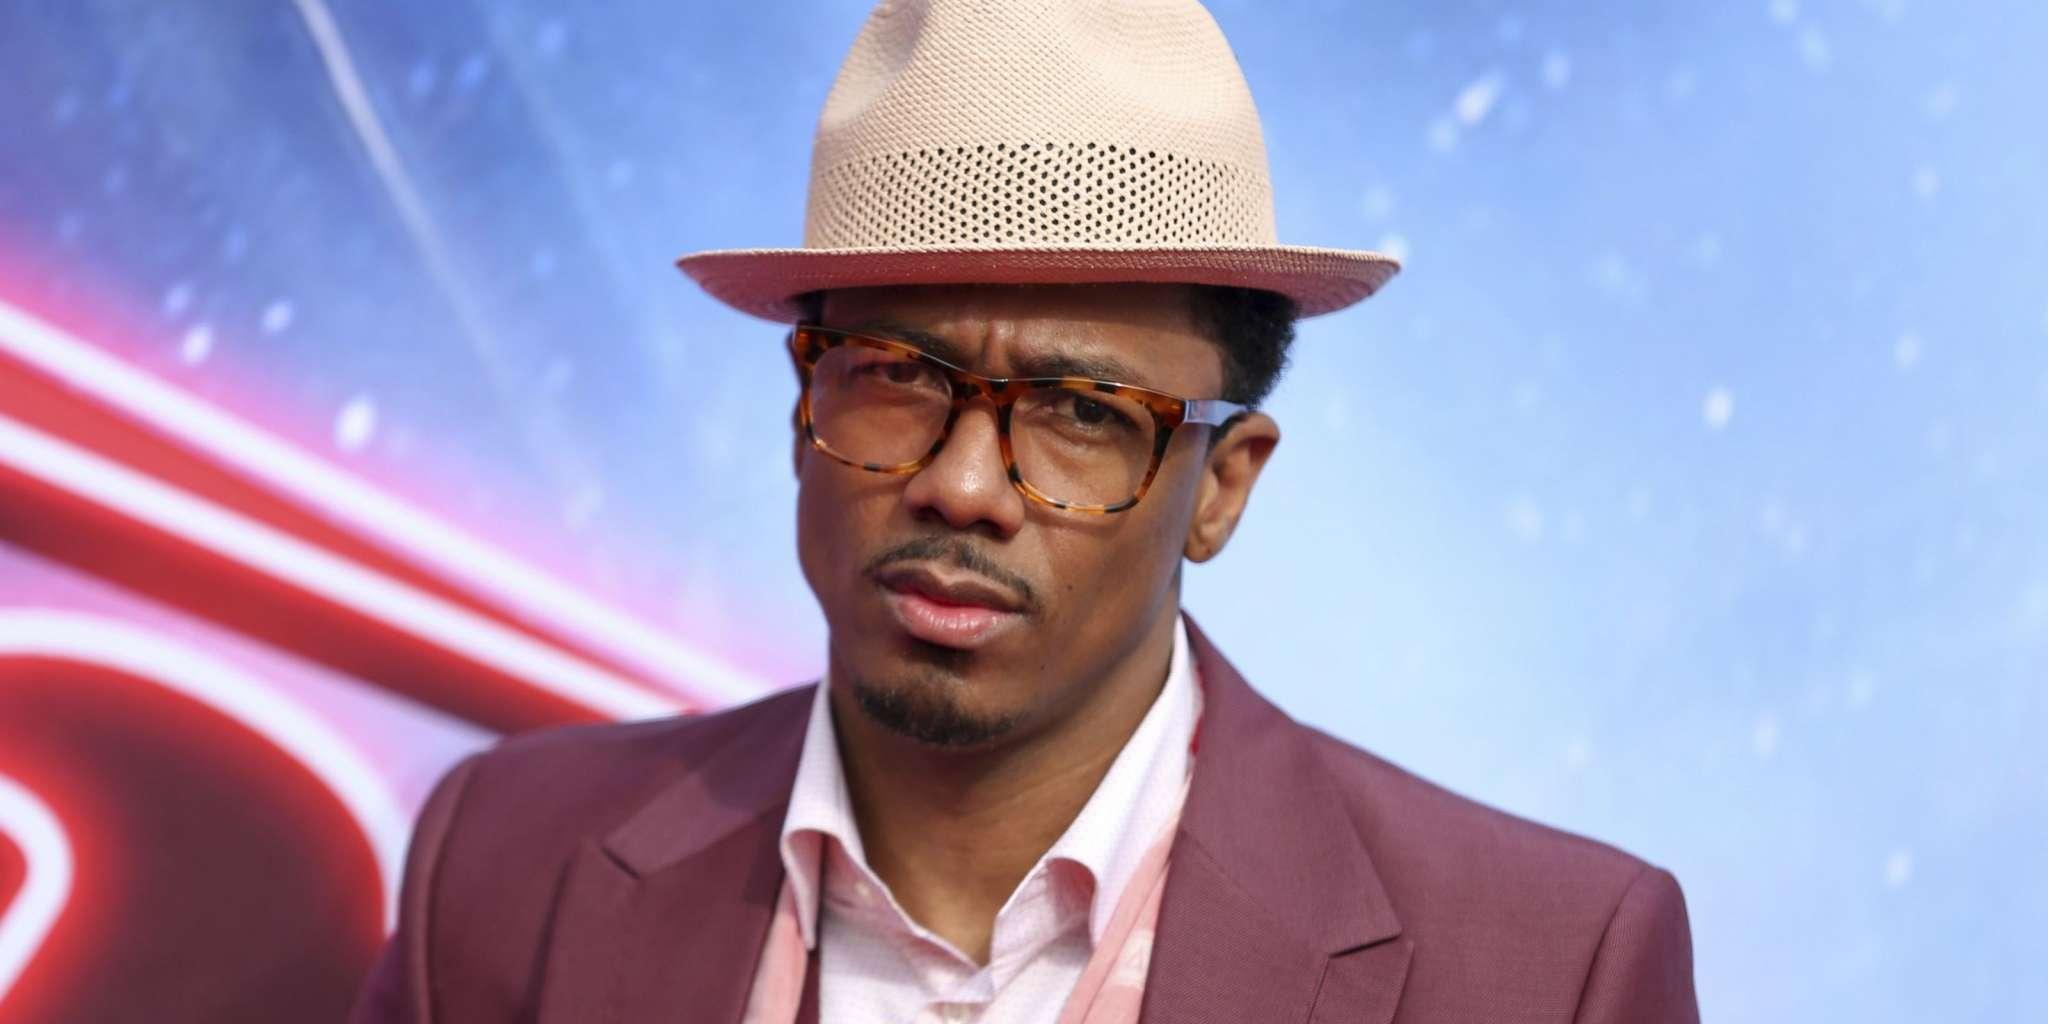 Nick Cannon Wants To Fight Liam Neeson In A Celebrity Boxing Match Amid The Actor's Racist Controversy